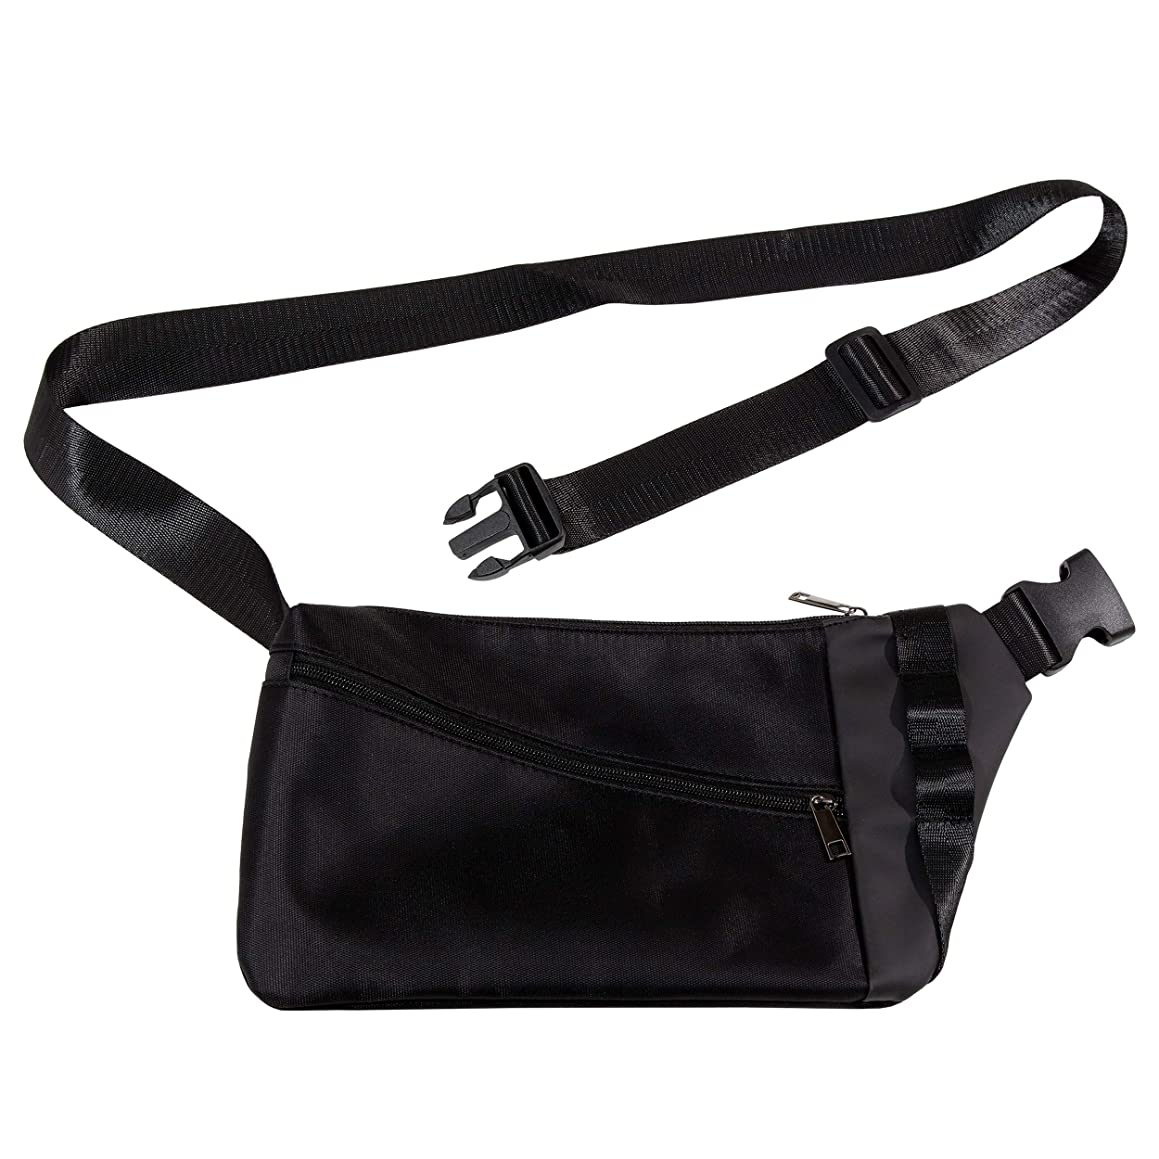 Sling Bag Casual Daypack Lightweight Shoulder/Crossbody Bag in Black